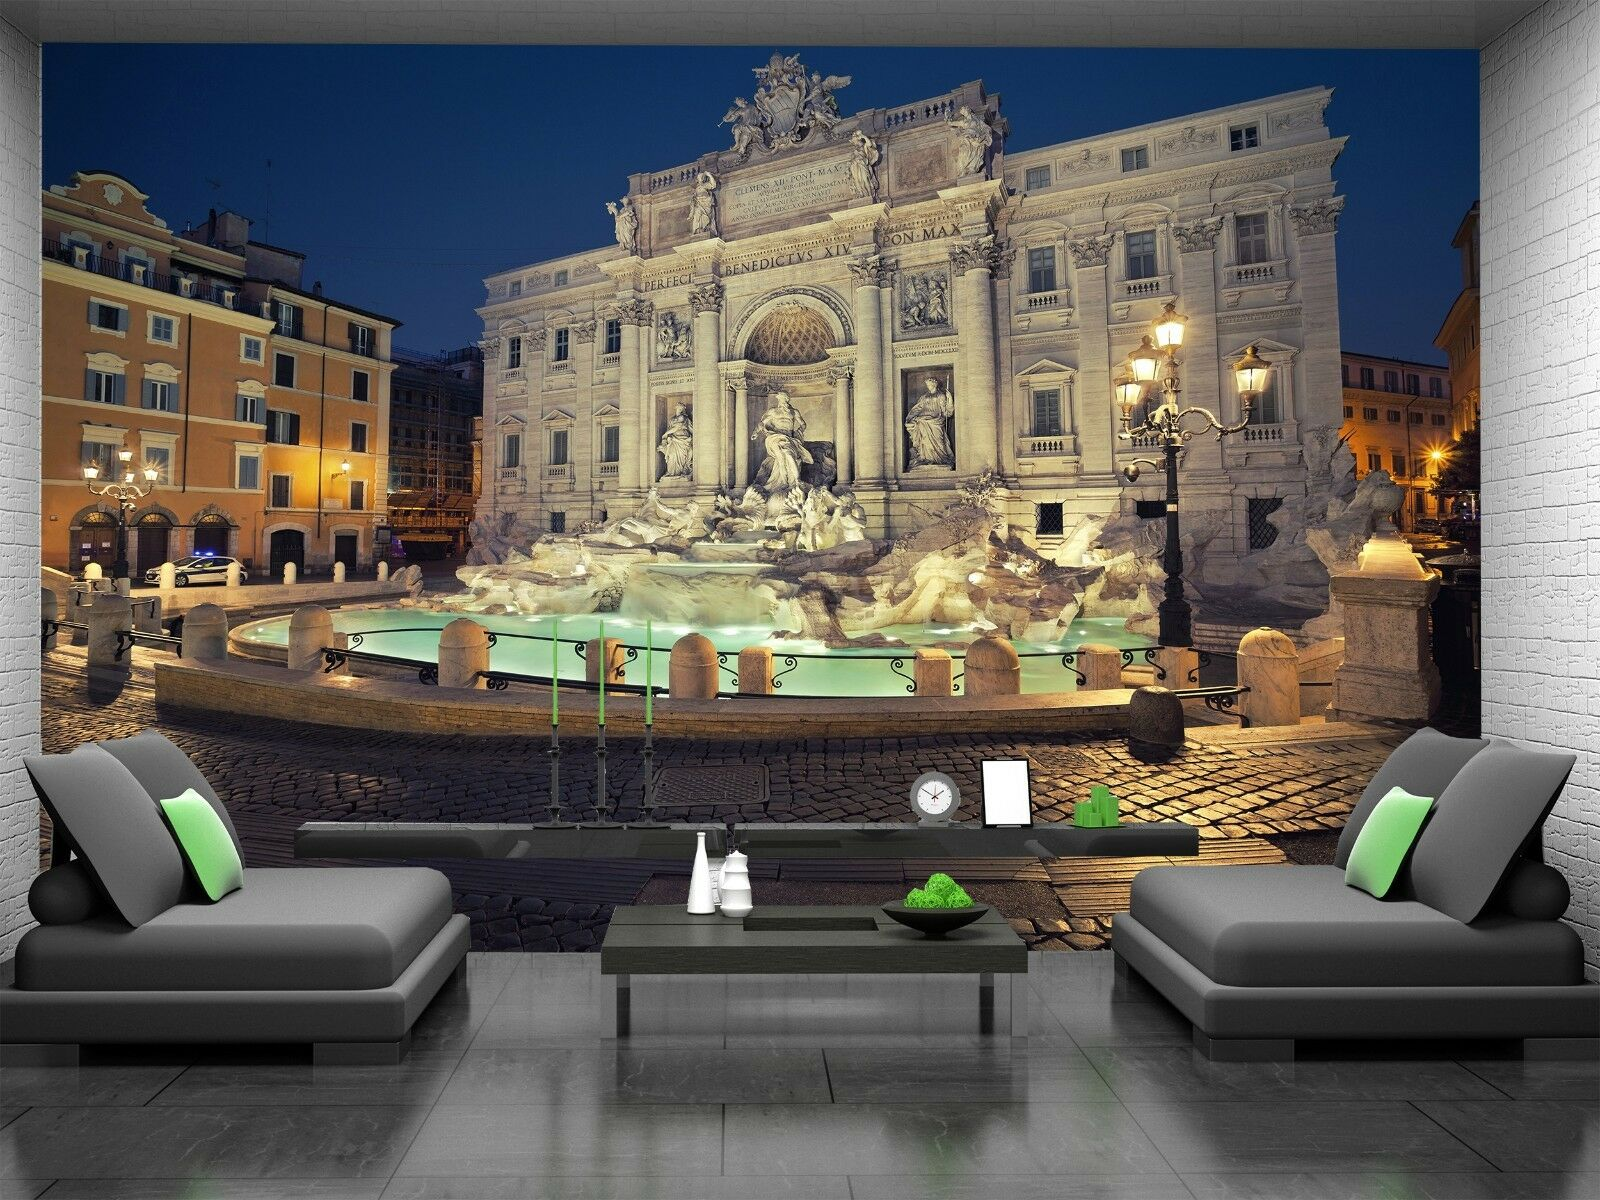 Rome III  Wall Mural Photo Wallpaper GIANT DECOR Paper Poster Free Paste